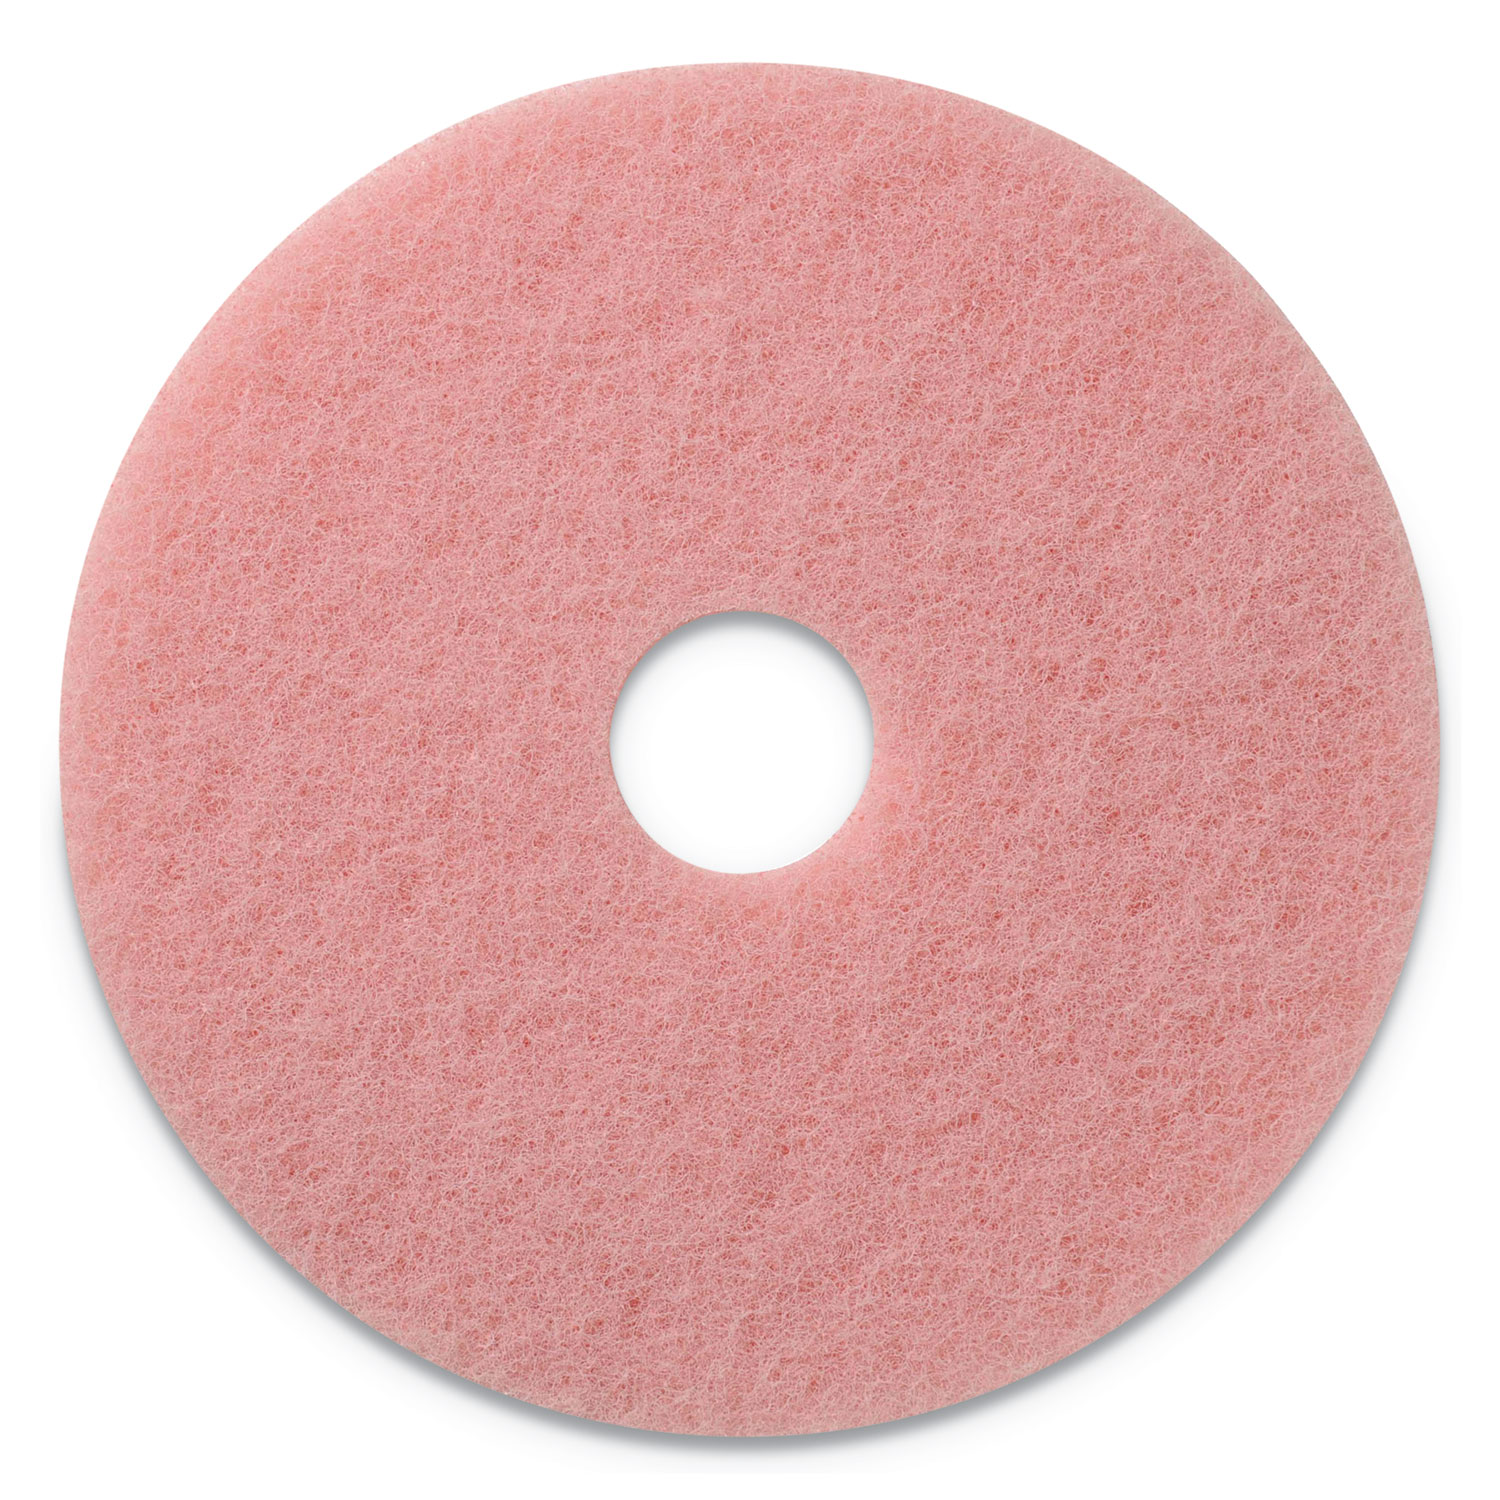 "Remover Burnishing Pads, 27"" Diameter, Pink, 2/CT AMF403427"